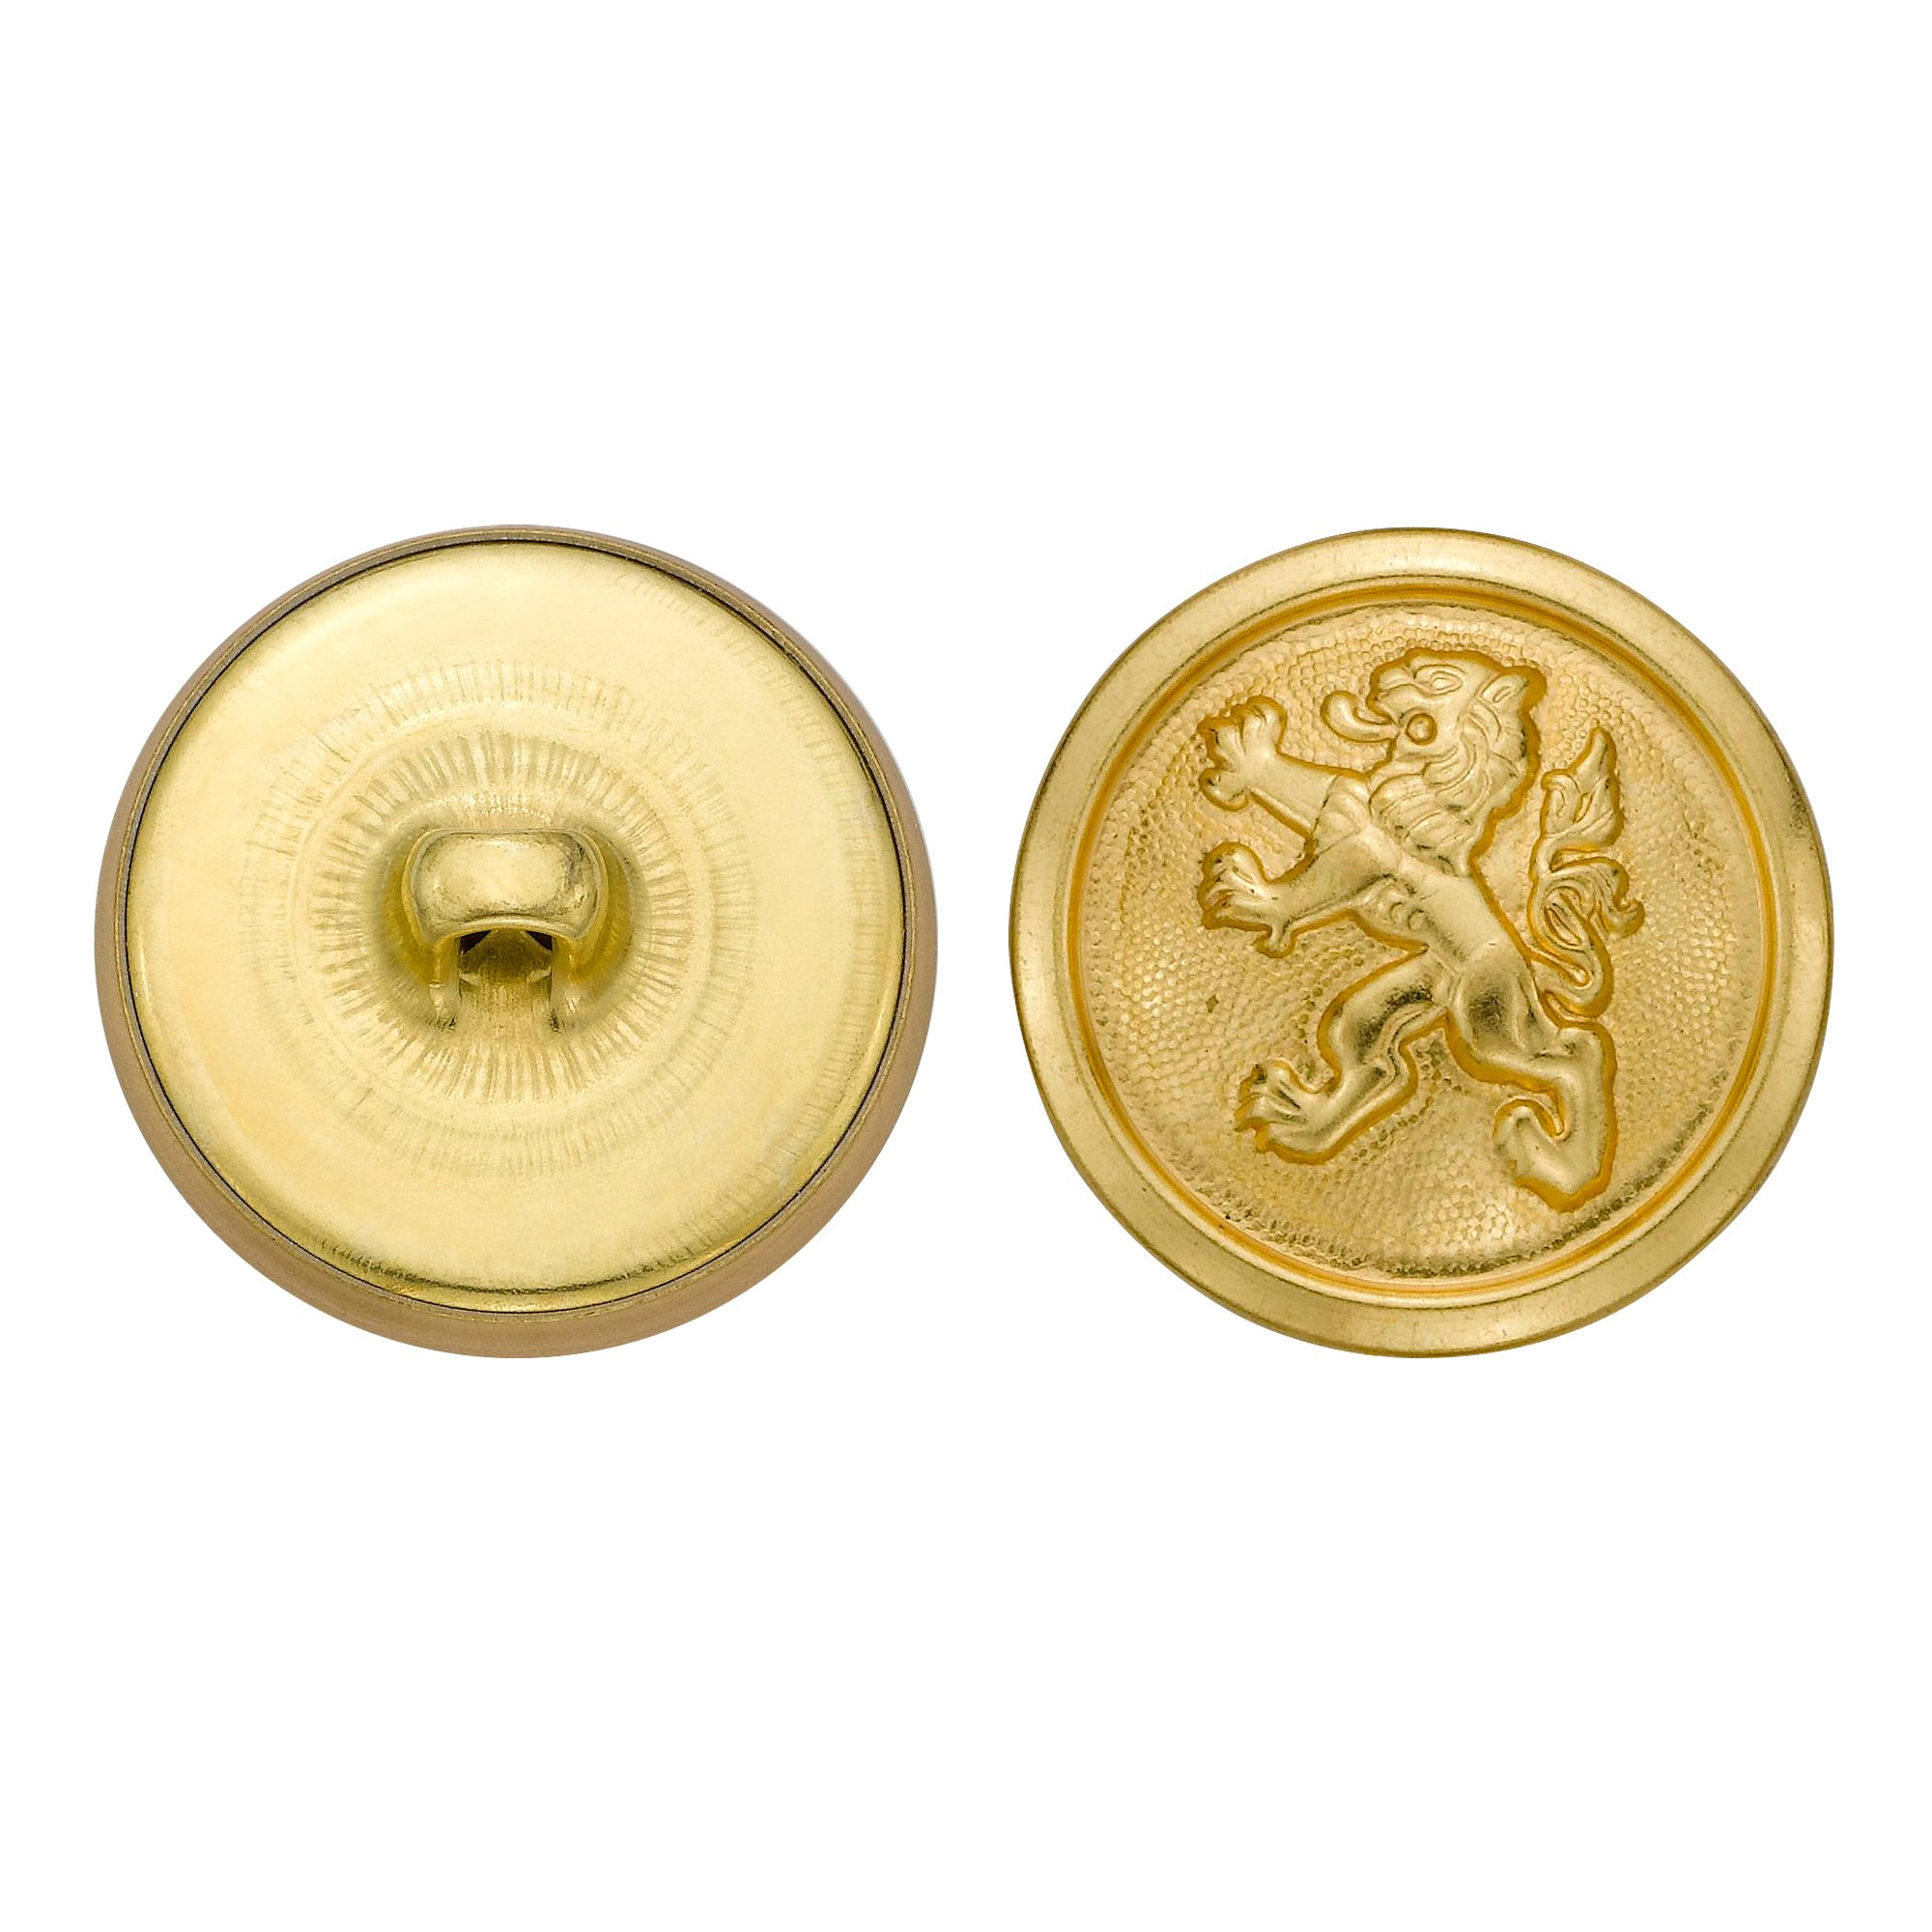 C&C Metal Products 5280 Chinese Lion Metal Button, Size 36 Ligne, Gold, 36-Pack